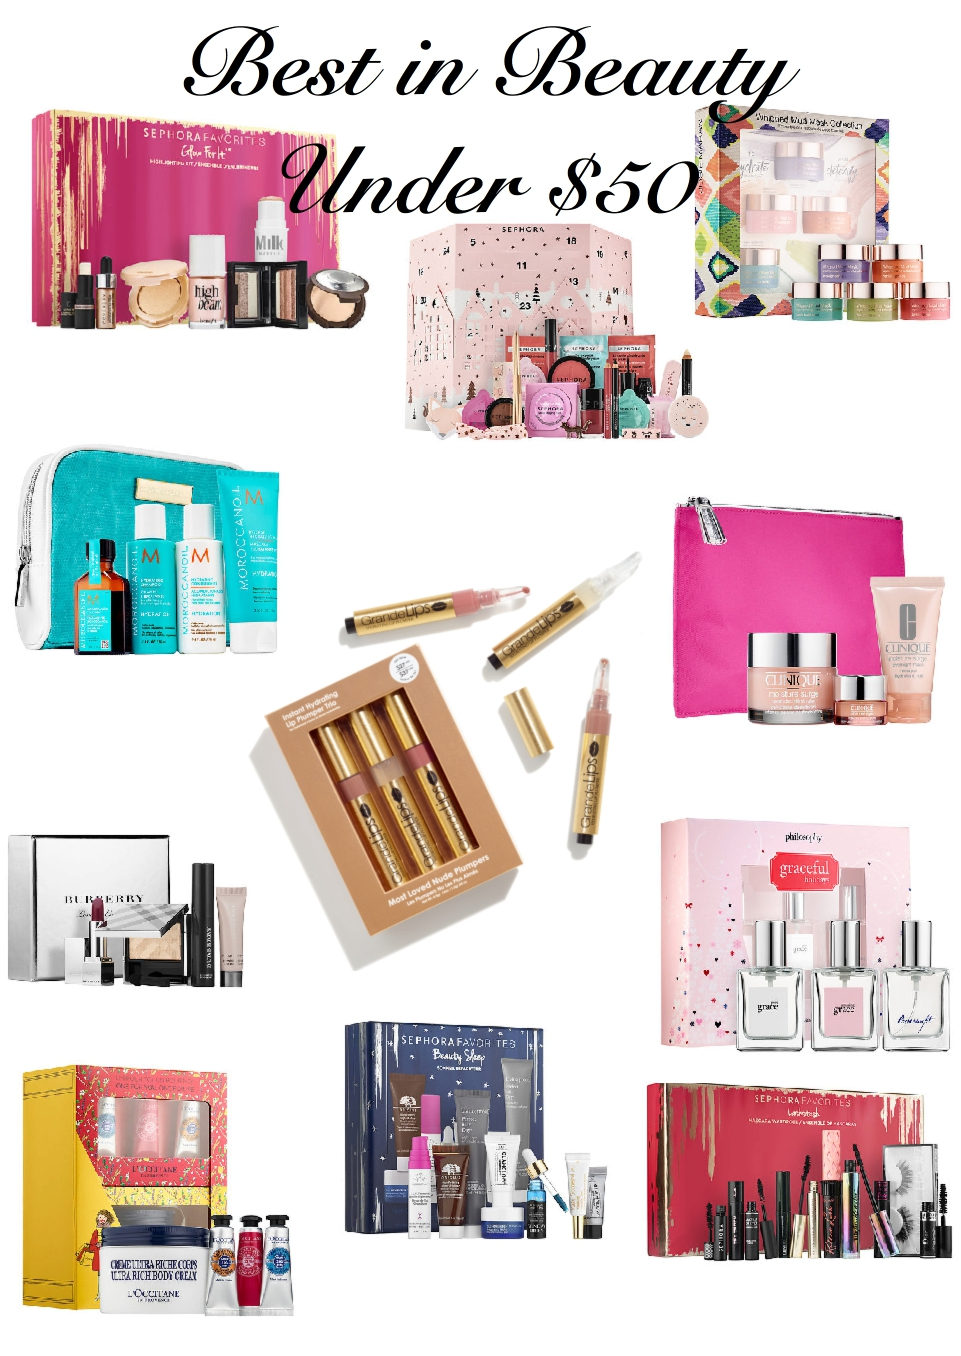 Best Under $50 Beauty Gift Sets, holday 2017, beauty gift guide, under $50, sephora, best gift sets from sephora